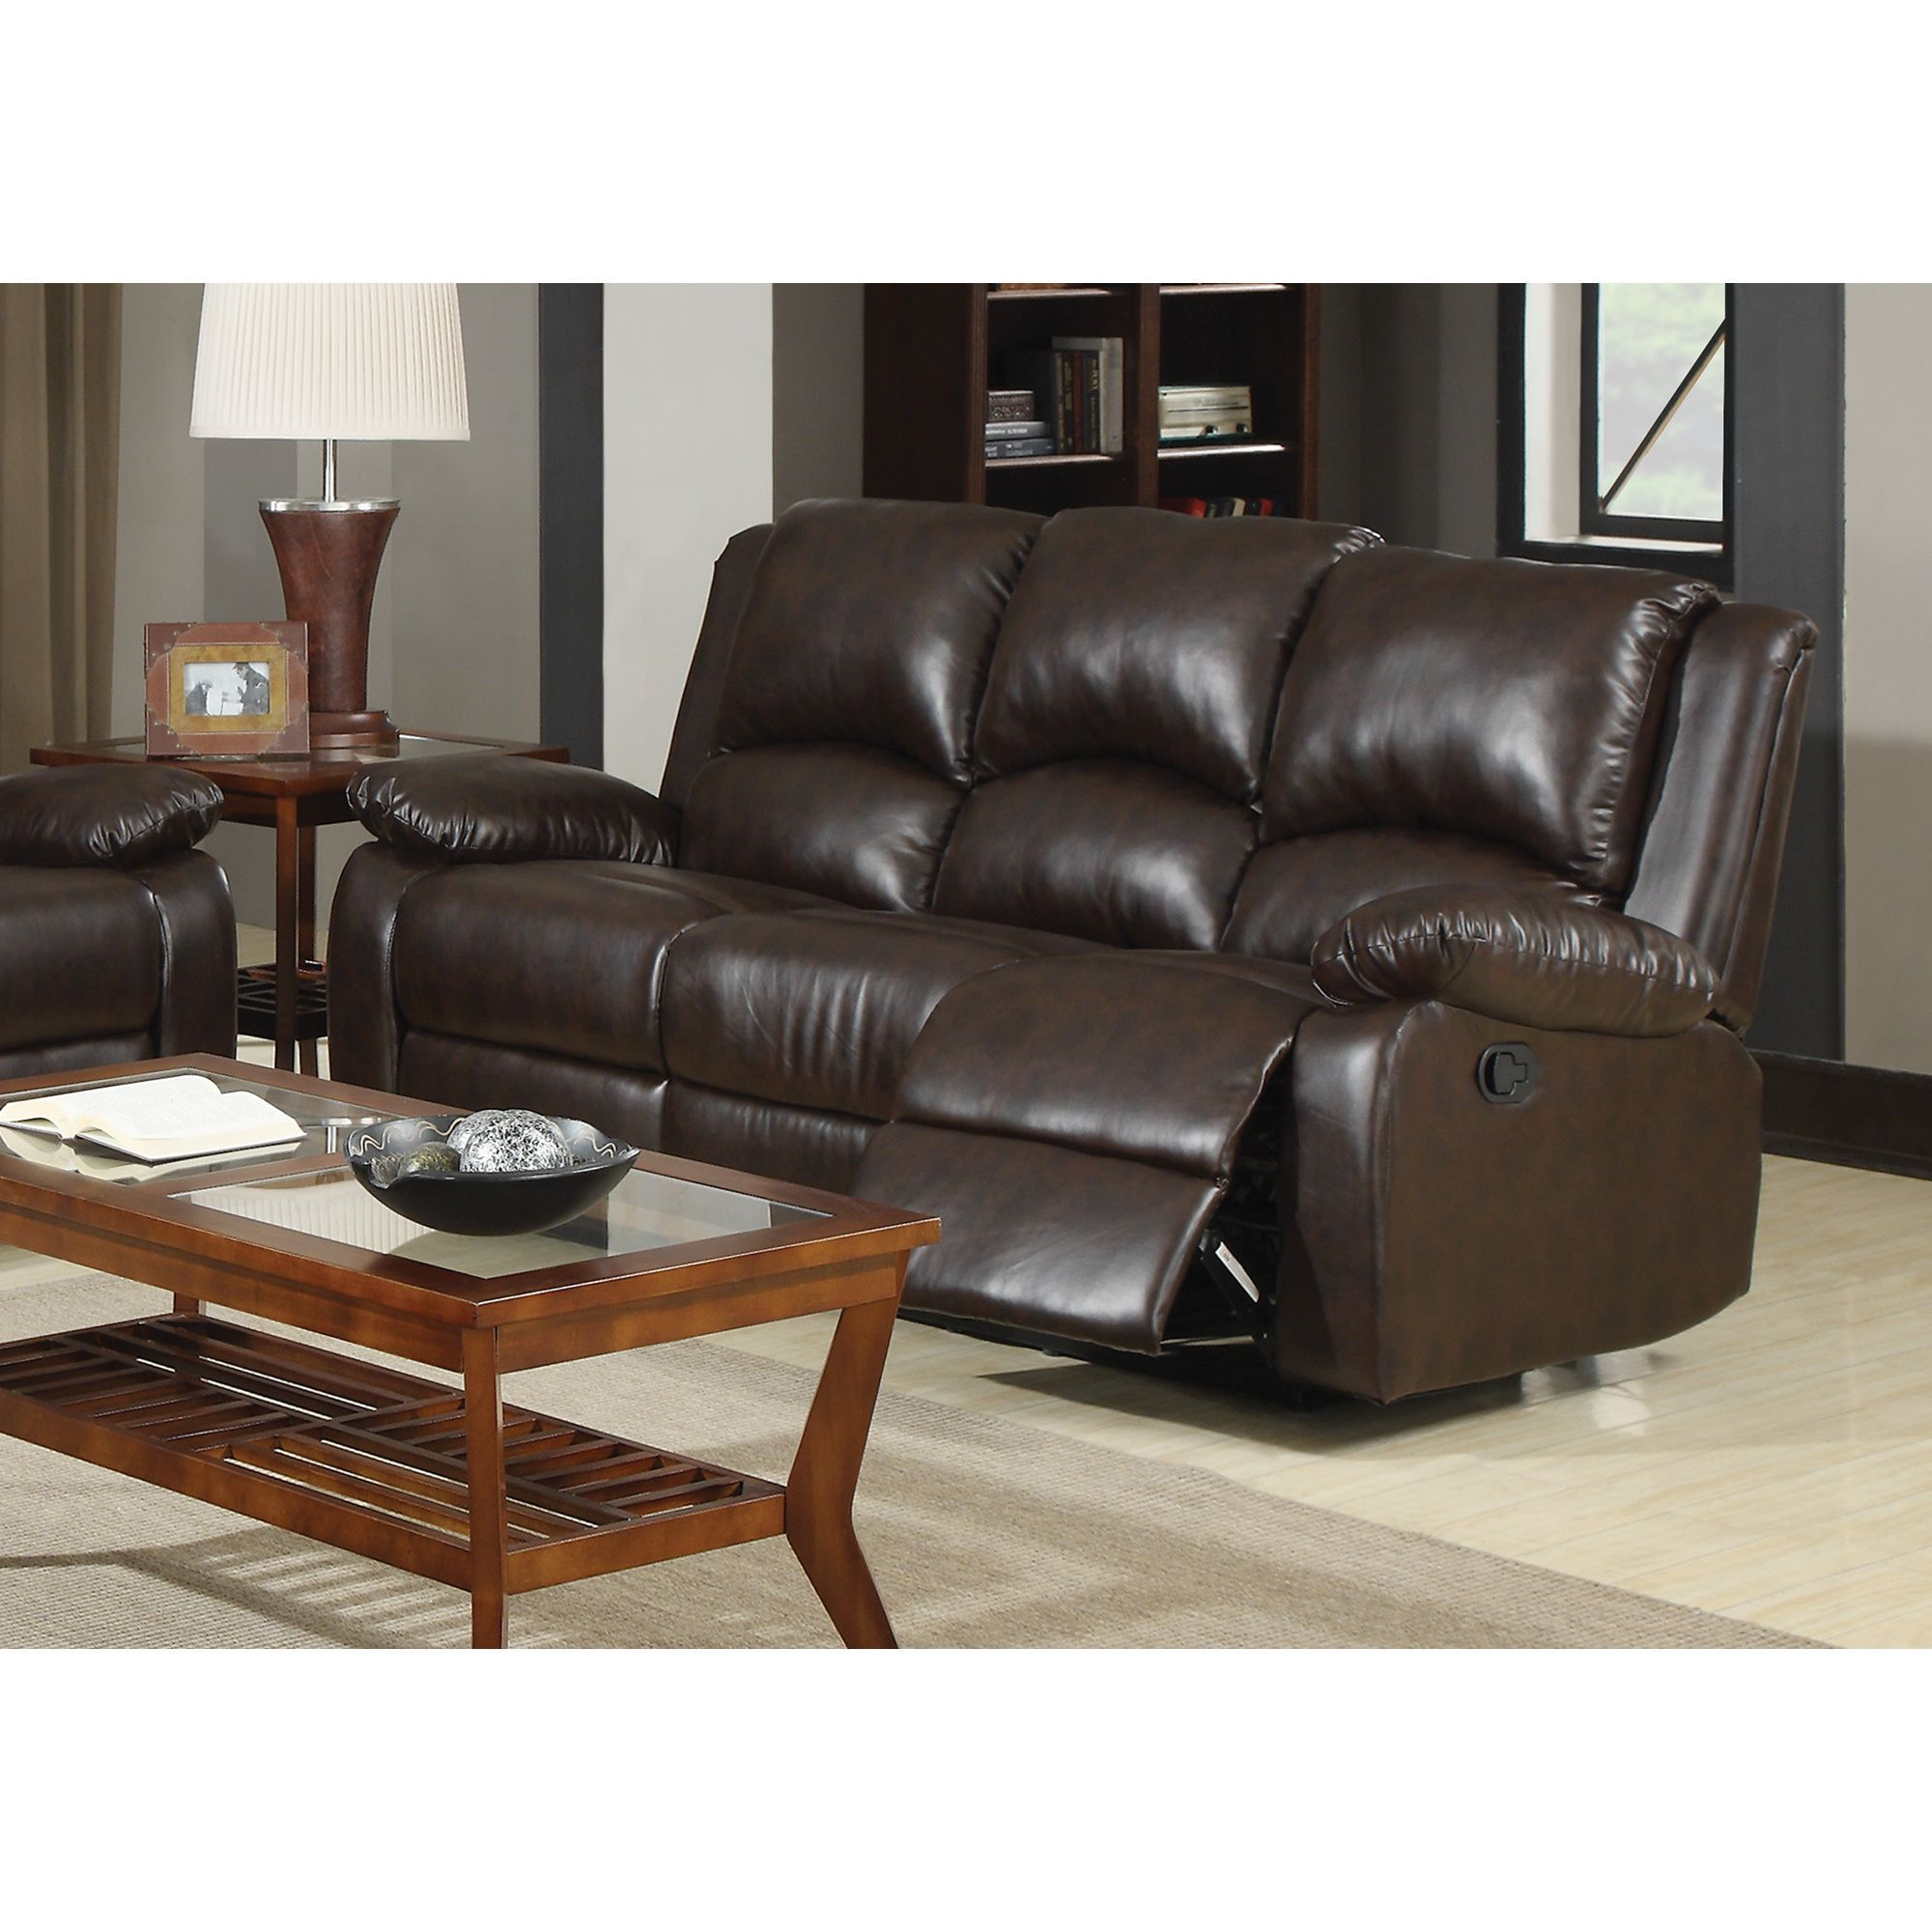 Coaster pany Brown Bonded Leather Recliner Sofa Motion